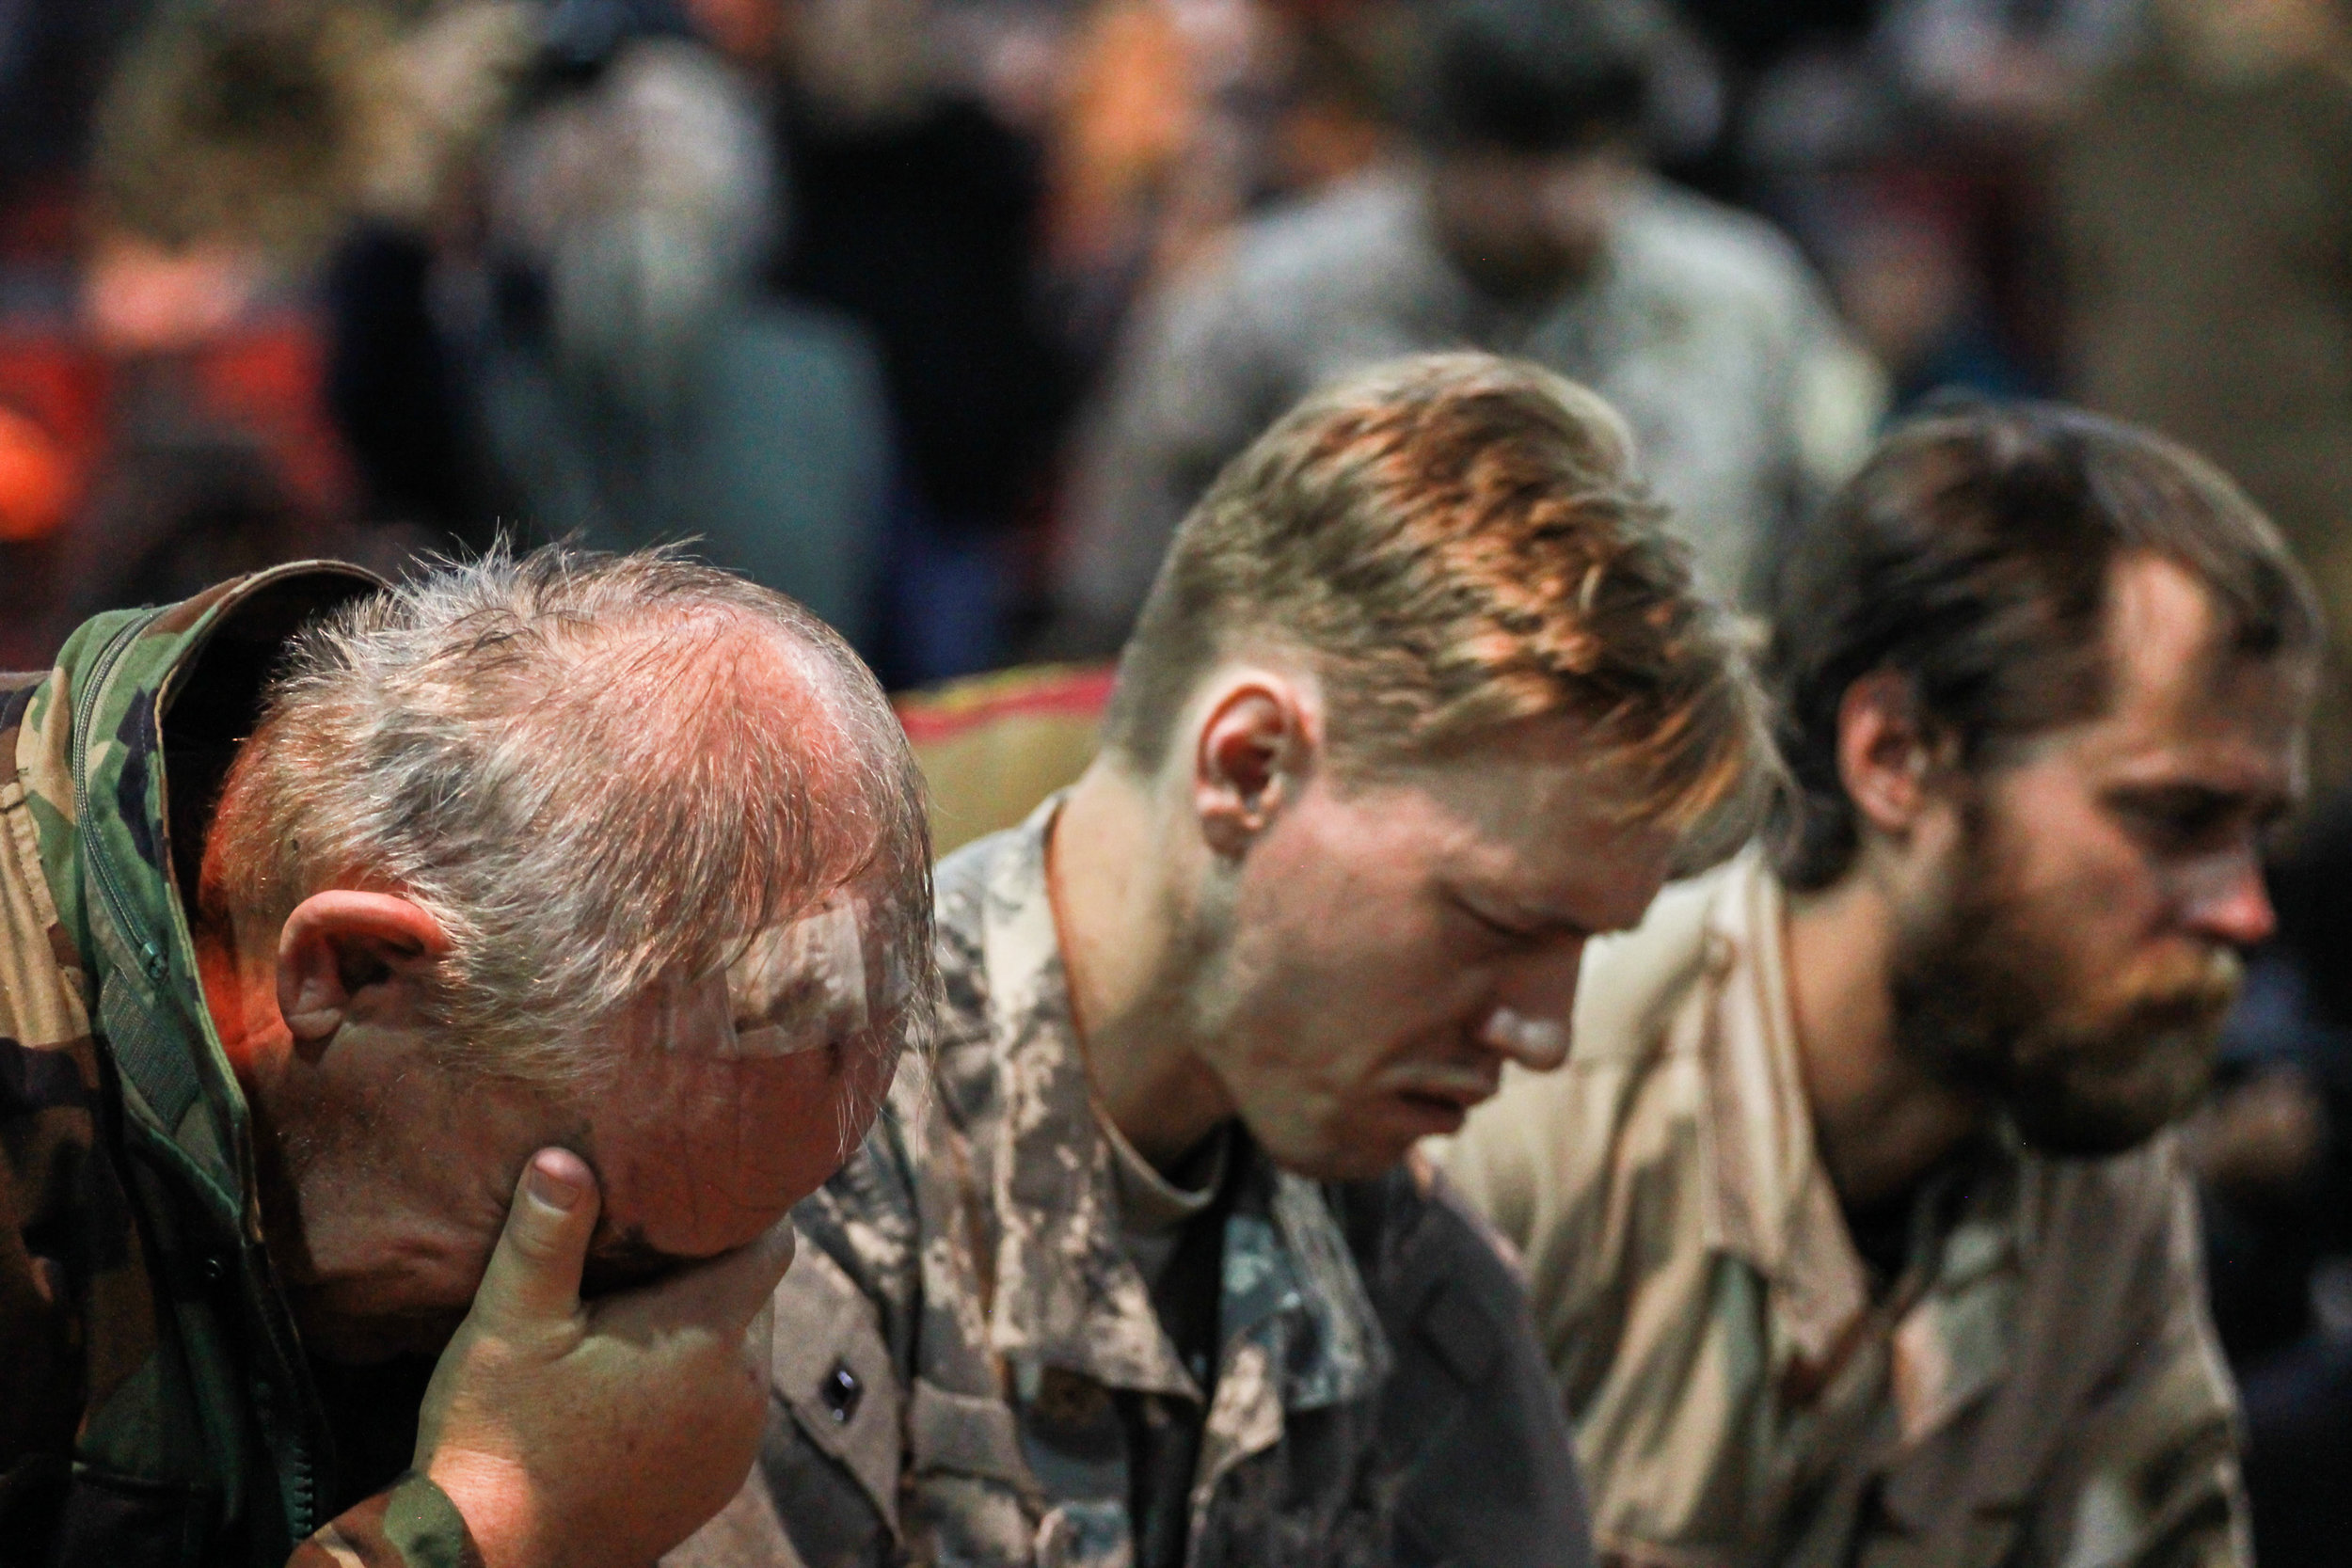 The veterans kneel for forgiveness, but they aren't the only ones who can't hold themselves together. Many of the people in the room, including journalists and civilians, continued to cry throughout the entire ceremony.  Fort Yates, ND December 5th, 2016.